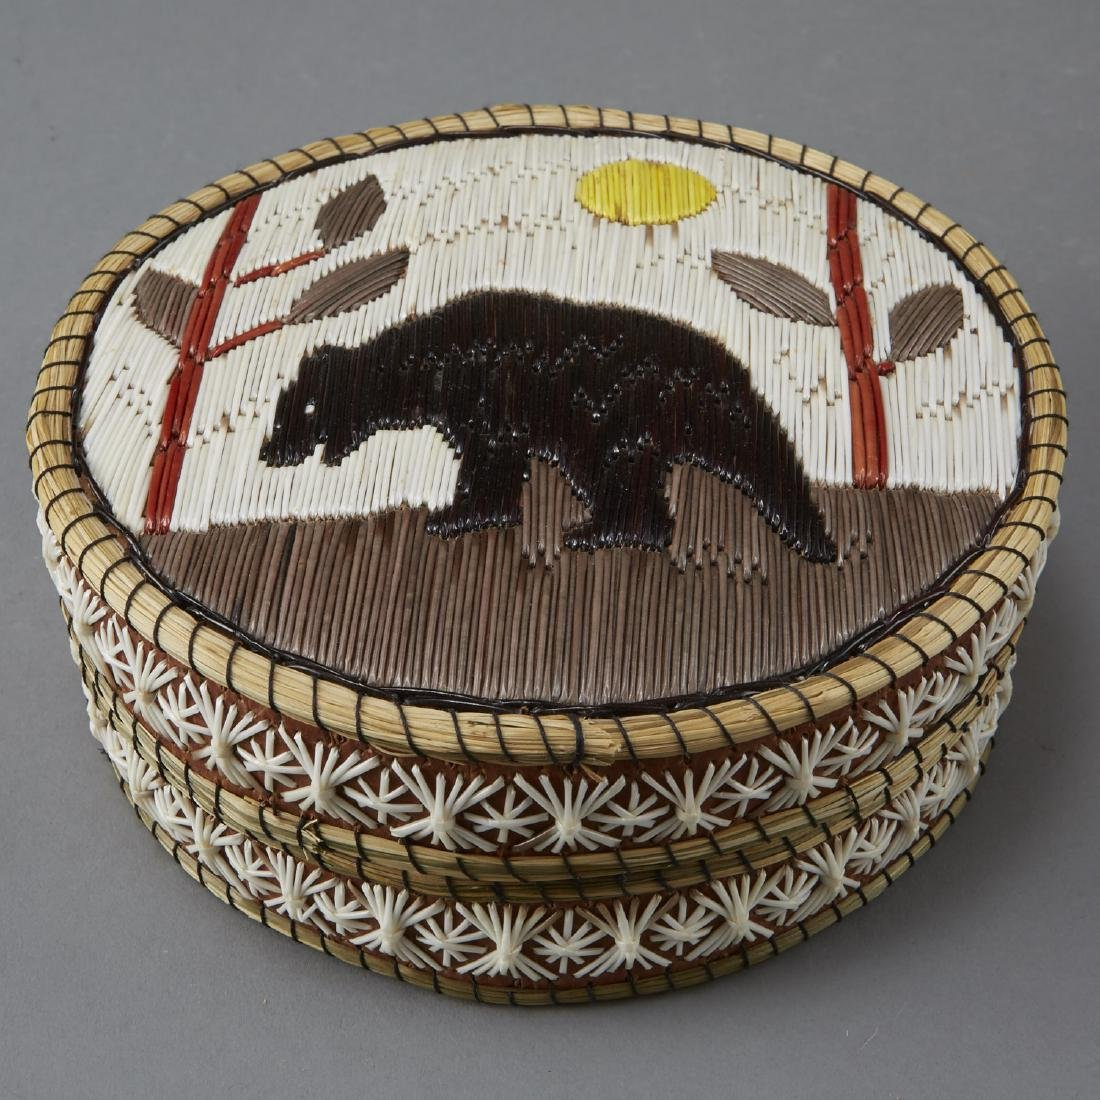 Group of 14 Native American Baskets - 6